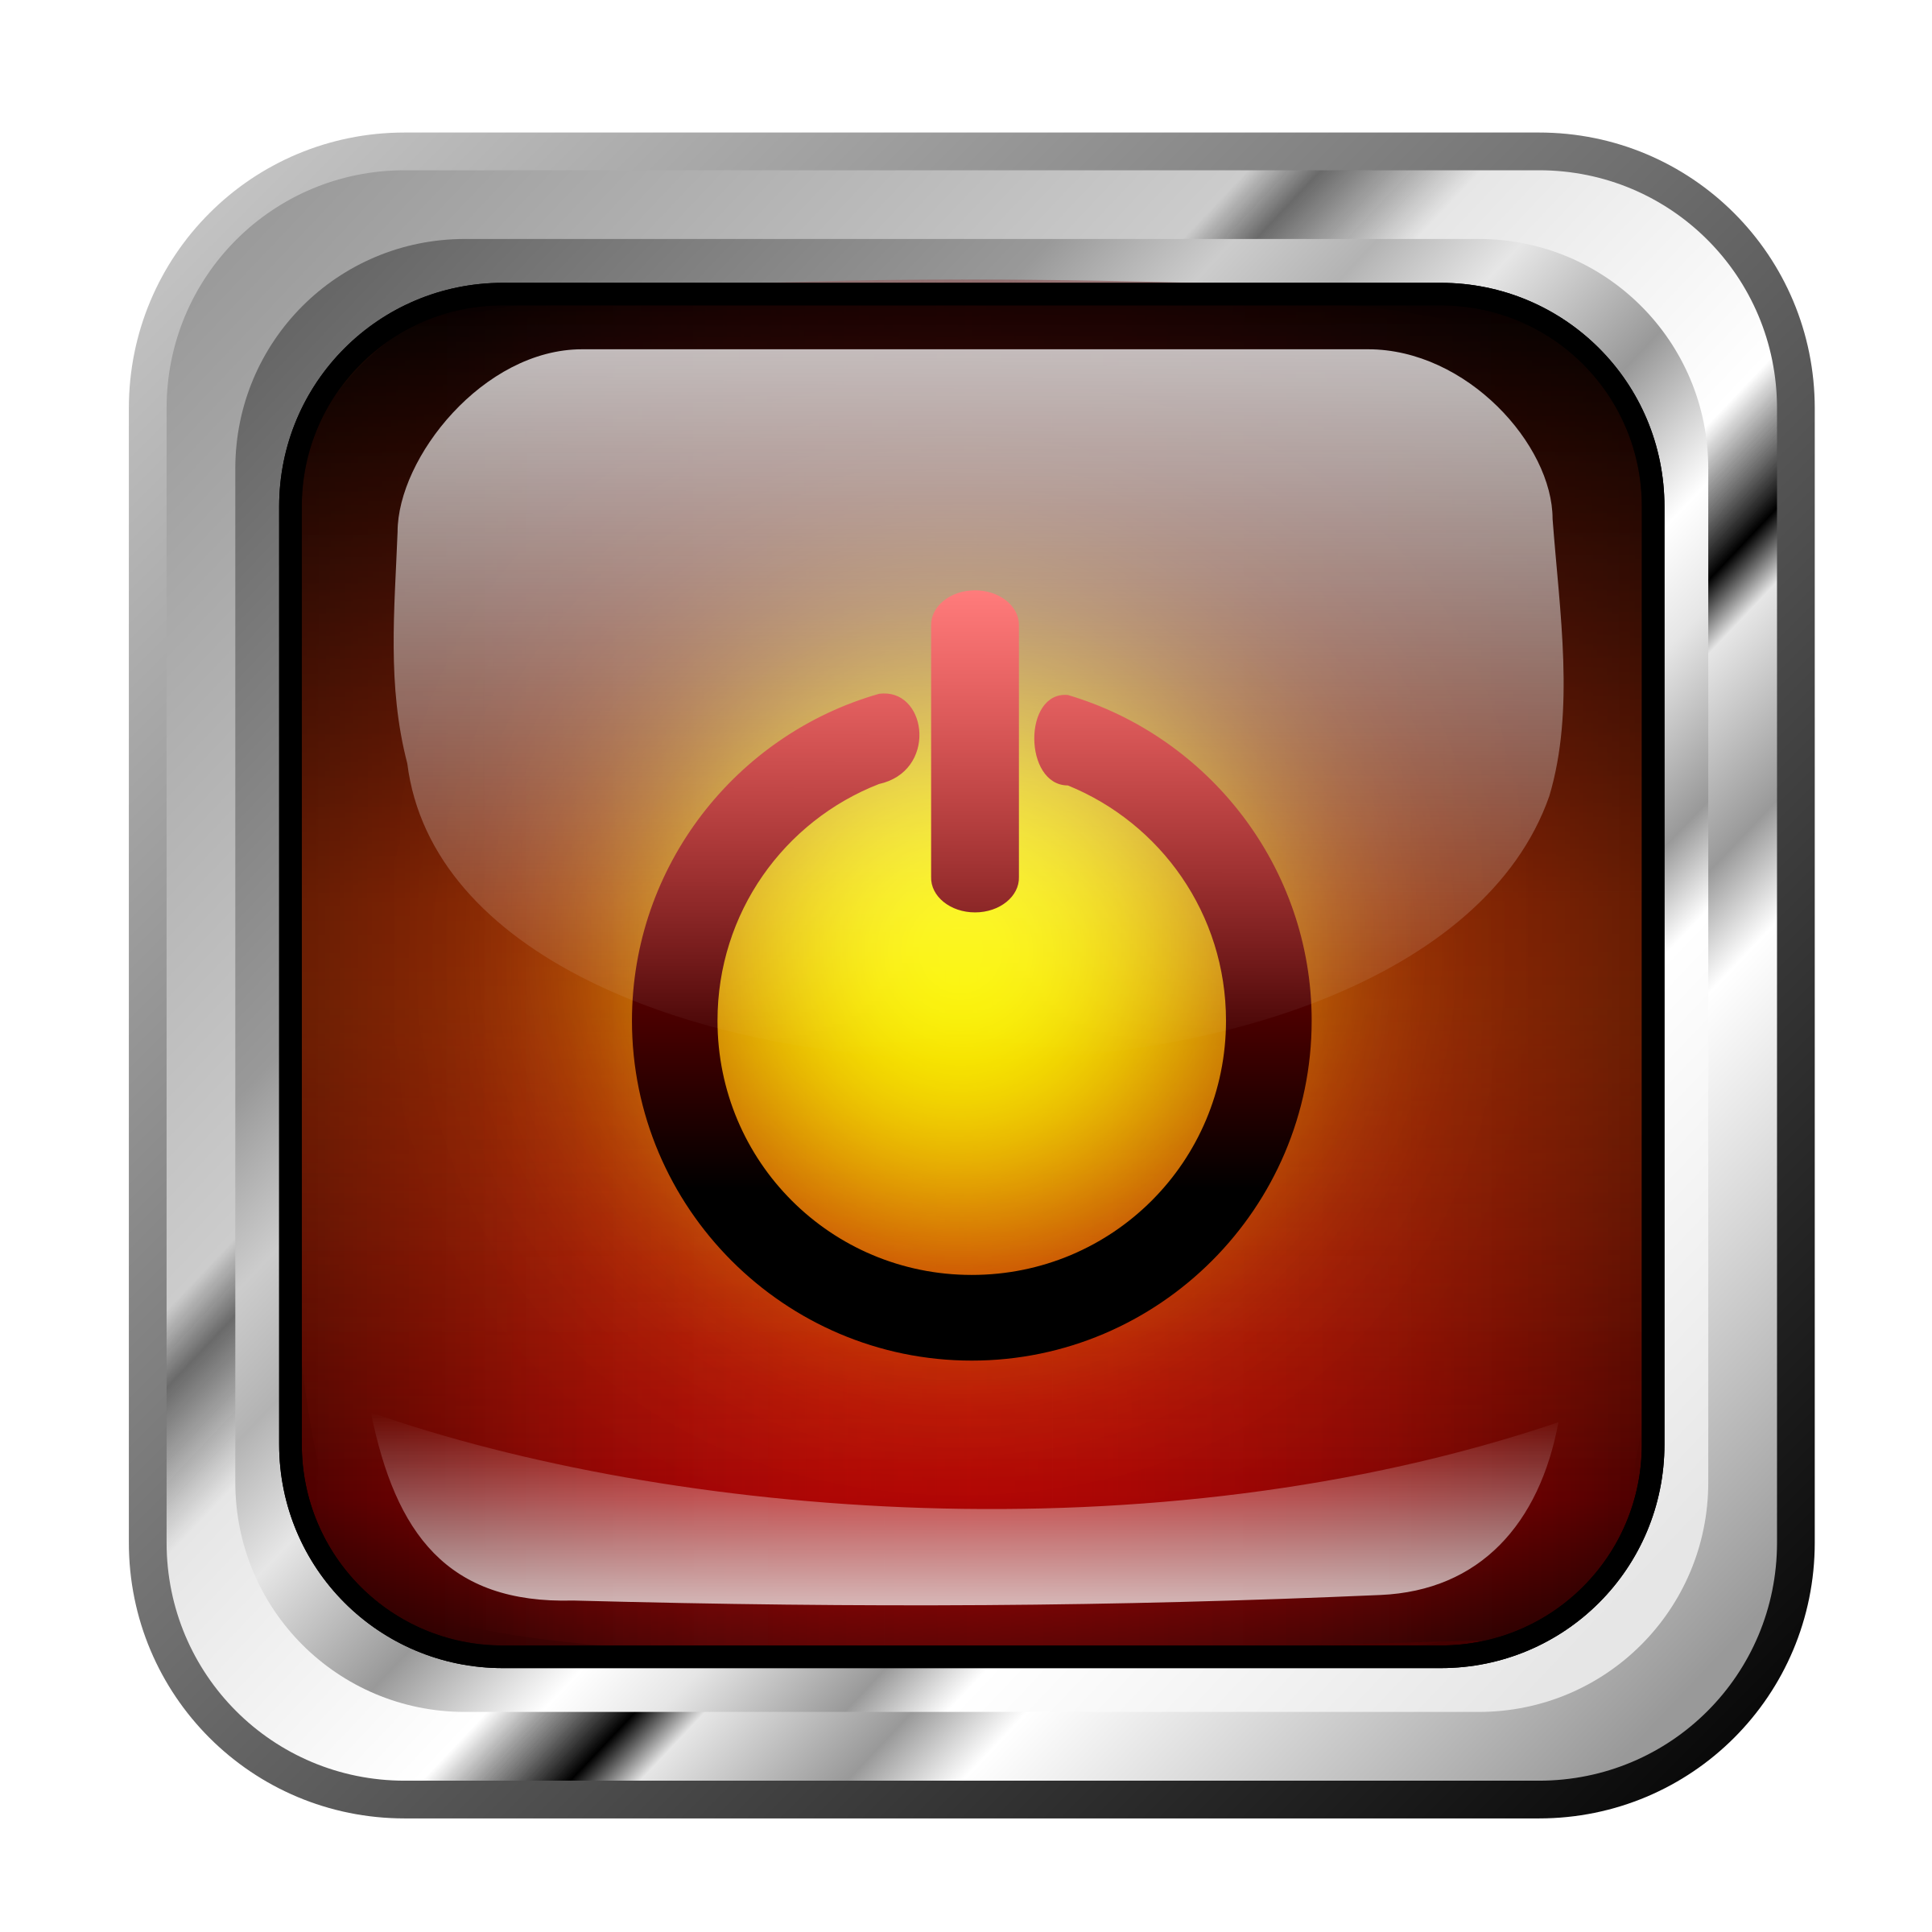 Square clipart icon. Red multimedia power big